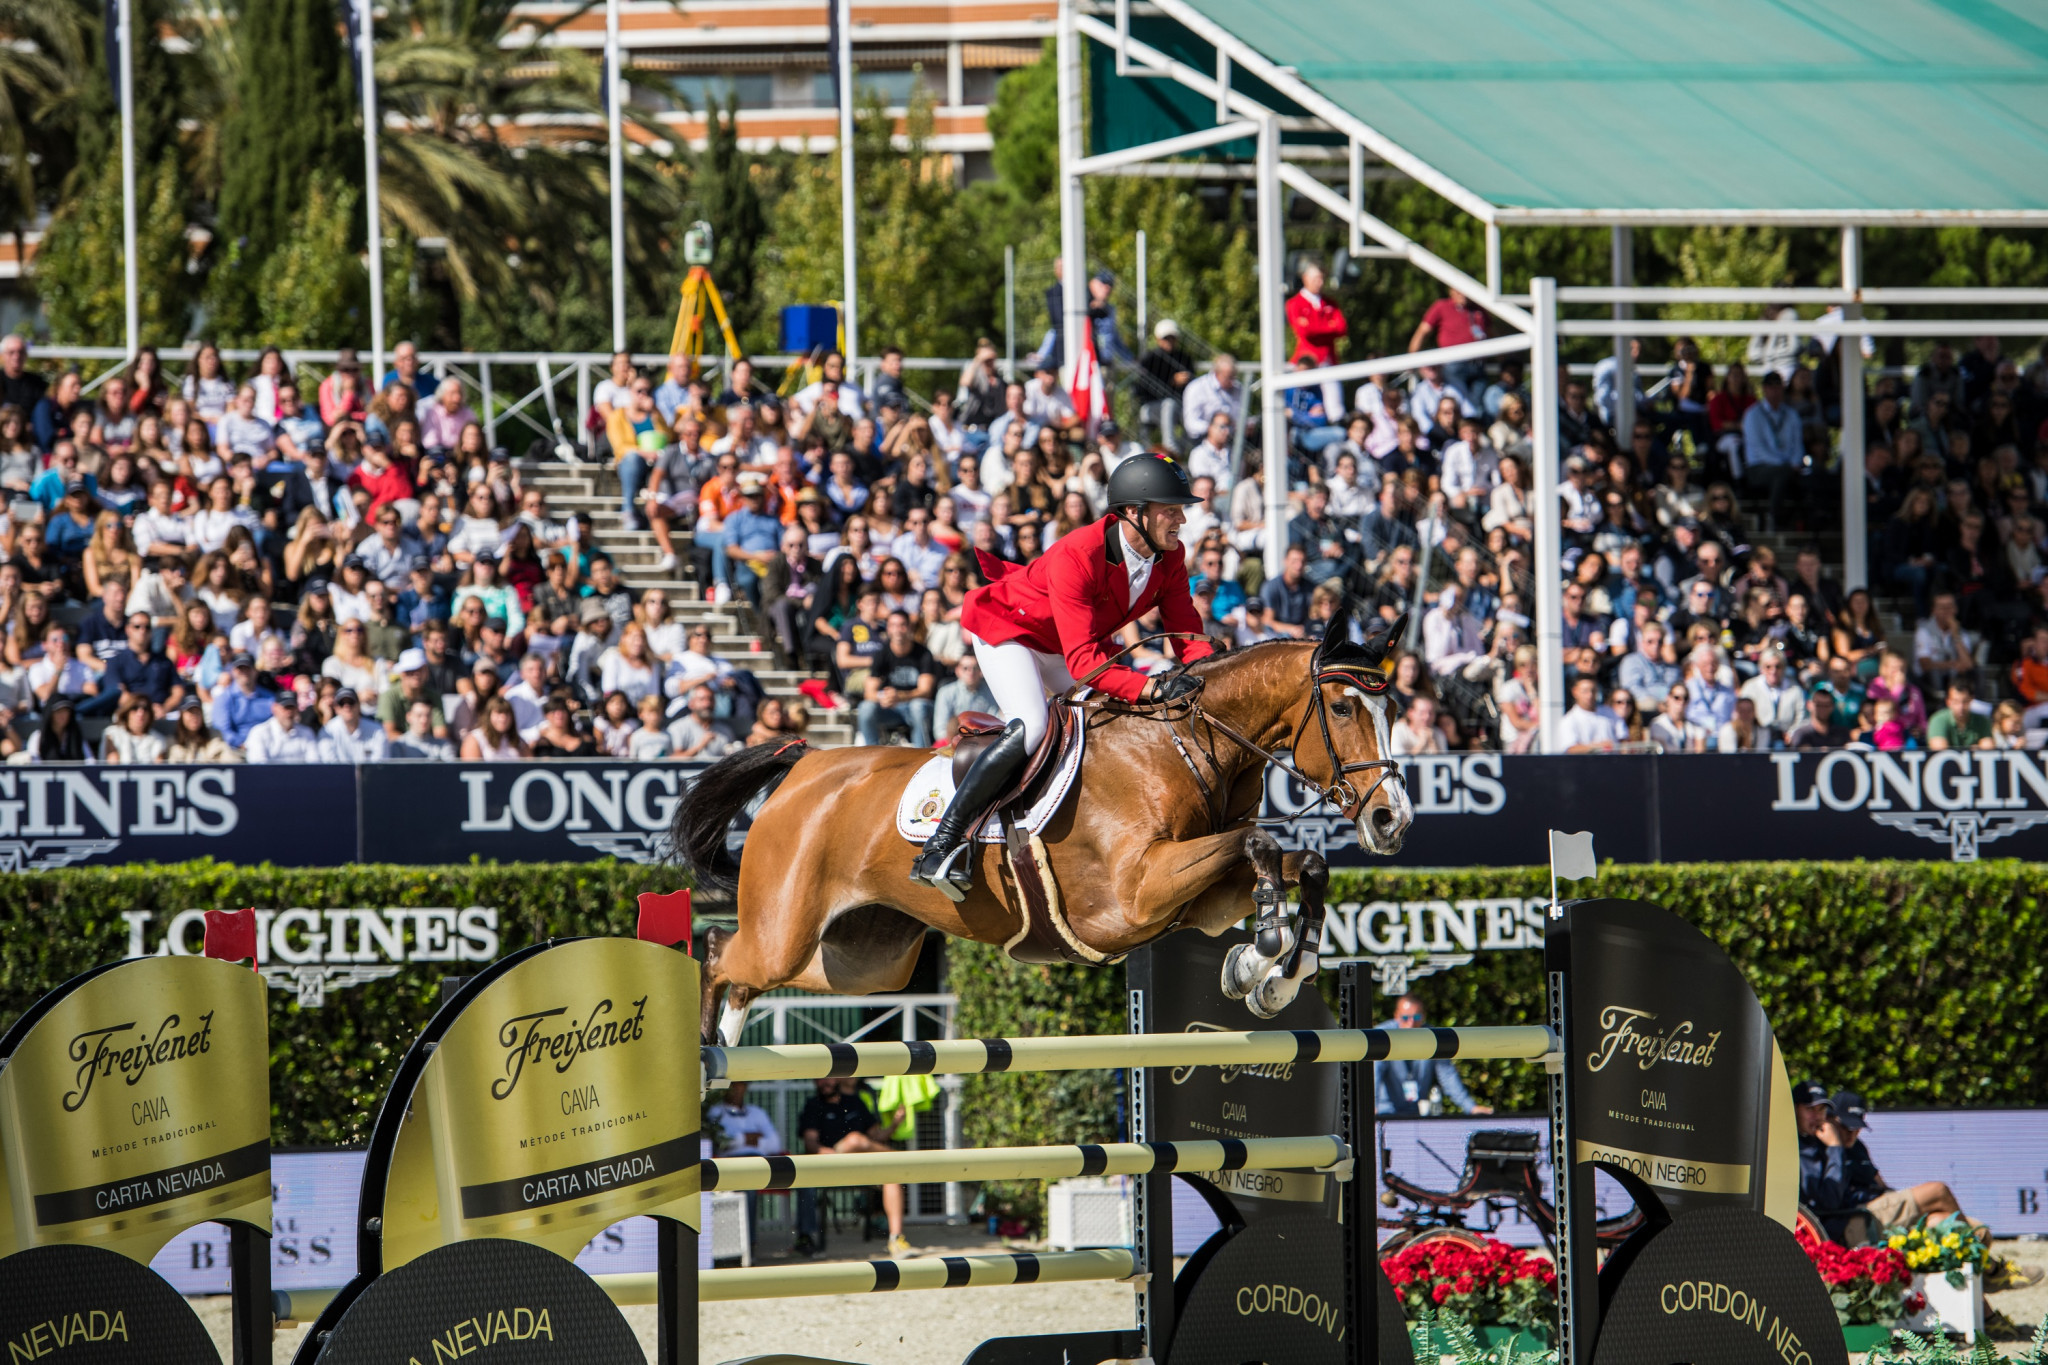 Talks held between the FEI and equestrian delegates resulted in an agreement that the Longines FEI Jumping Nations Cup should be the most important on the calendar ©FEI